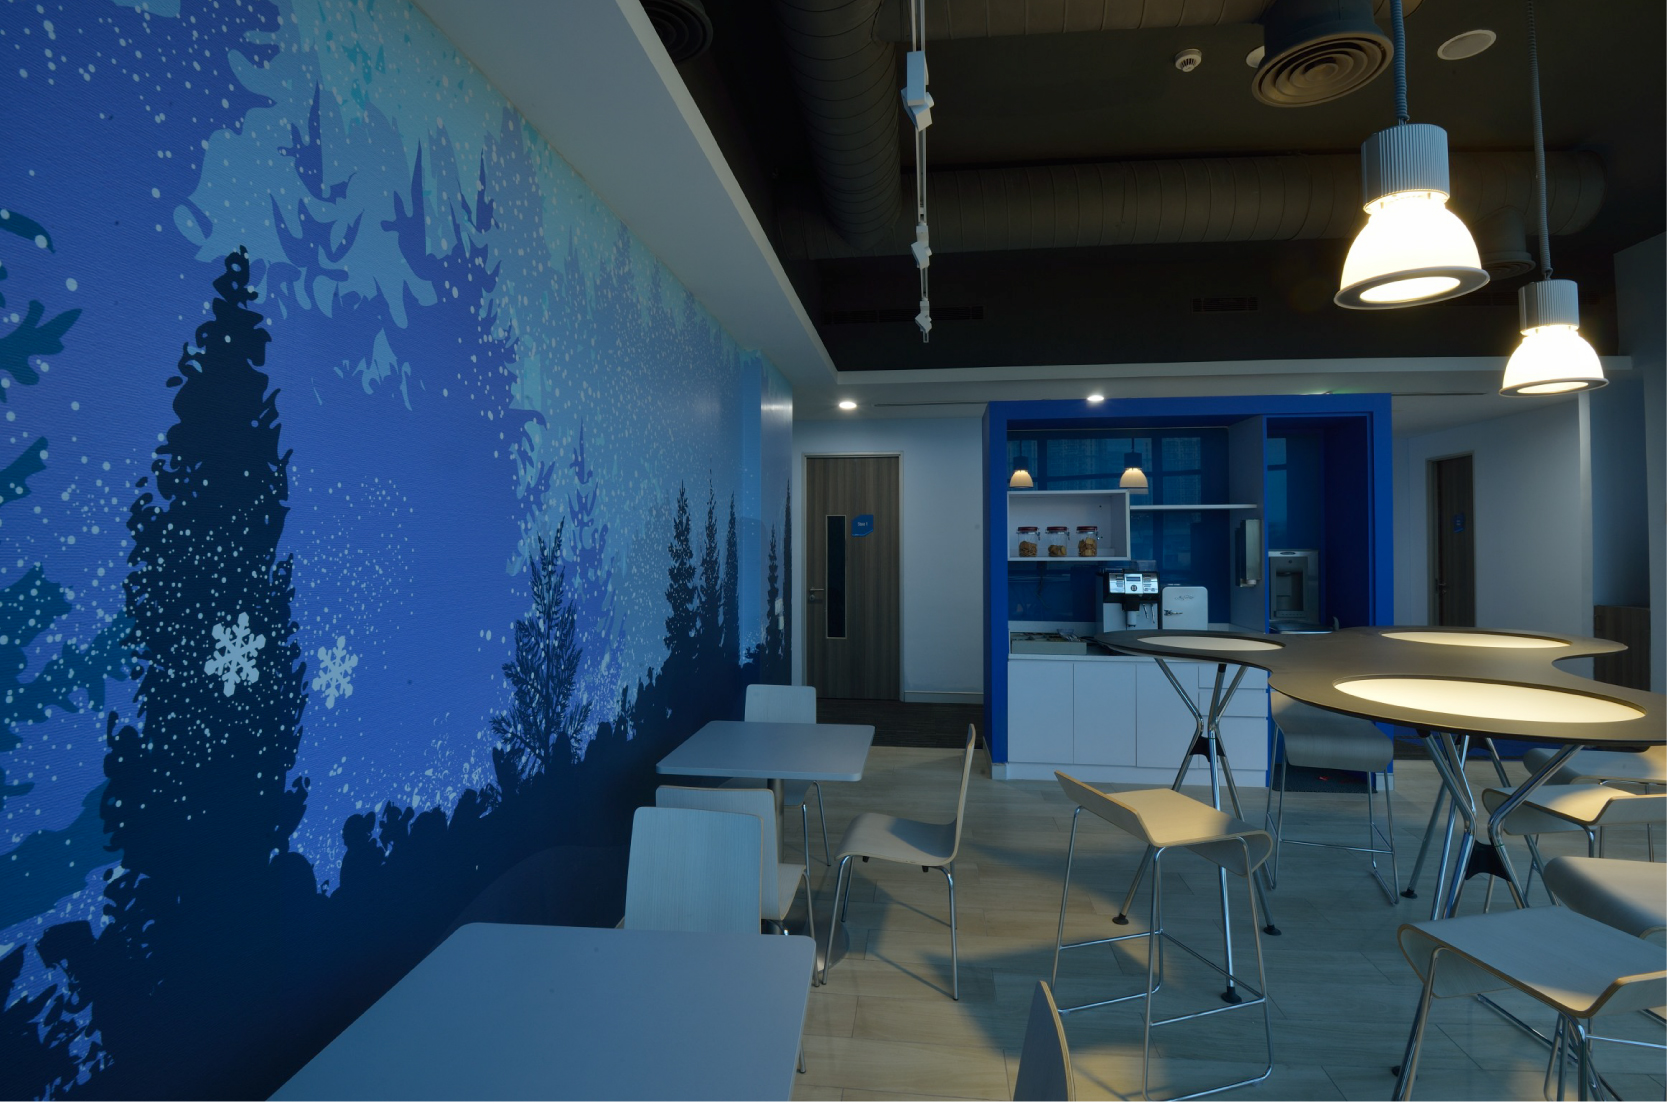 Cairn Corporate Office_Branded Spaces_Elephant Design_7.jpg